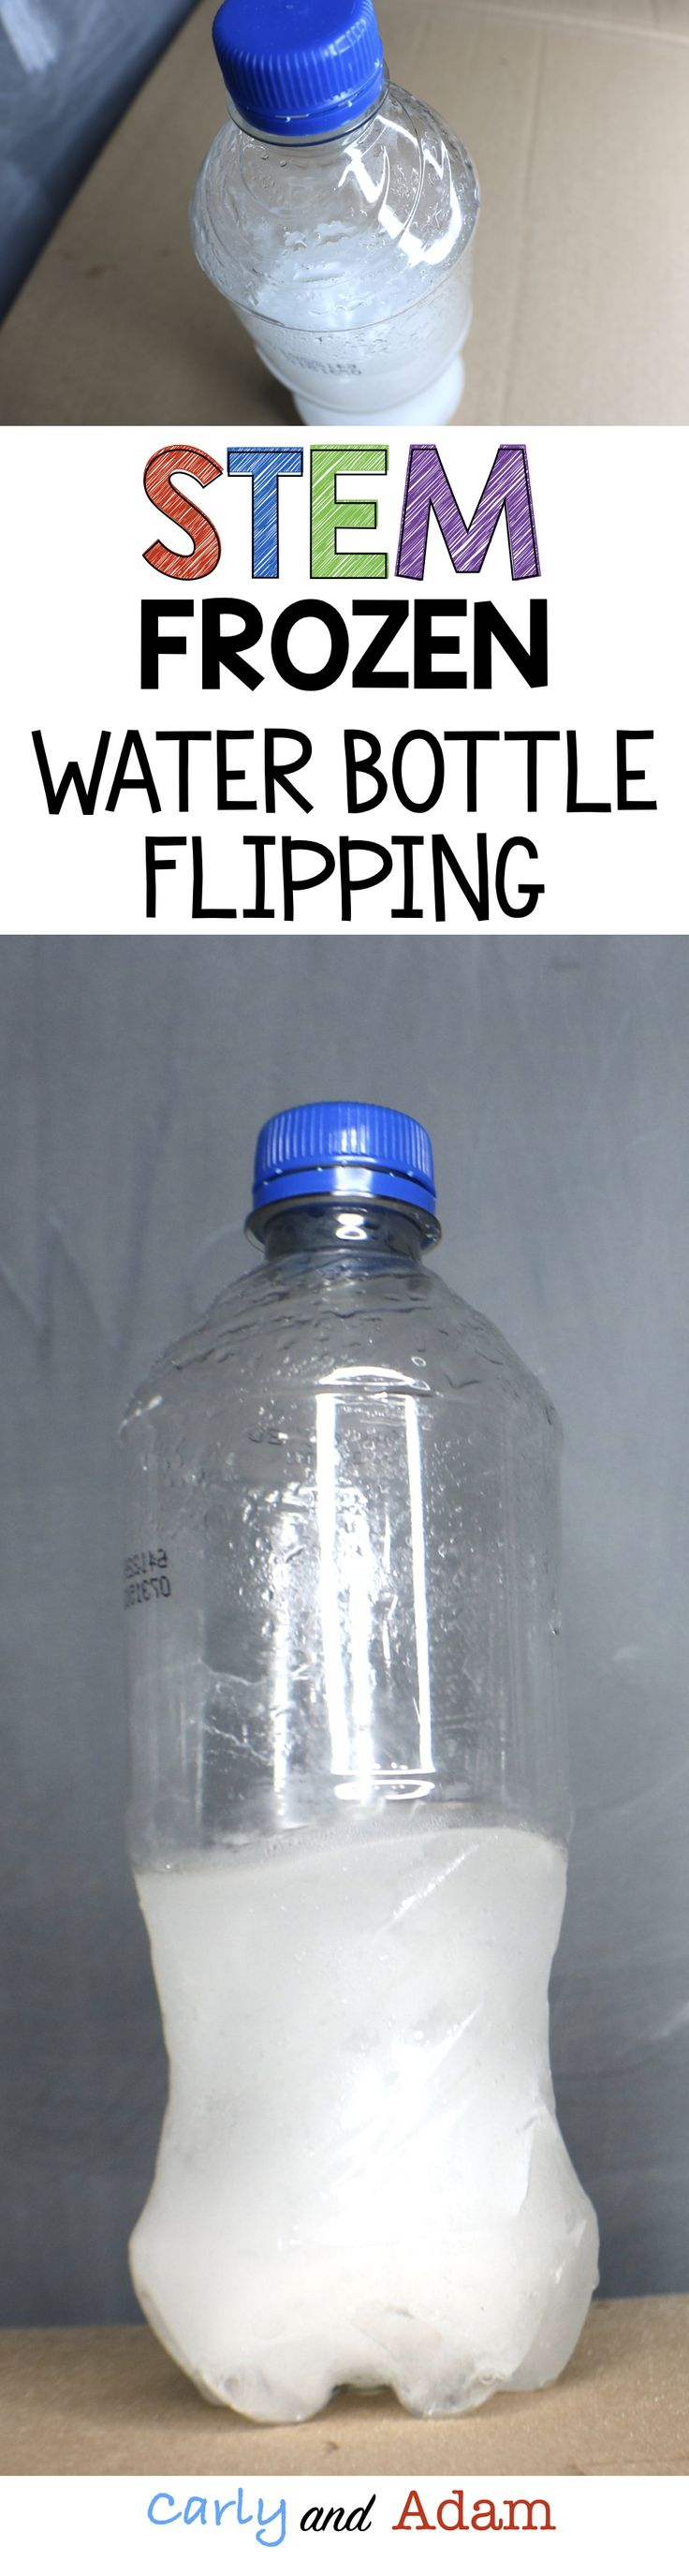 Students will investigate which water level is best for bottle flipping as well as if frozen or liquid water works best.